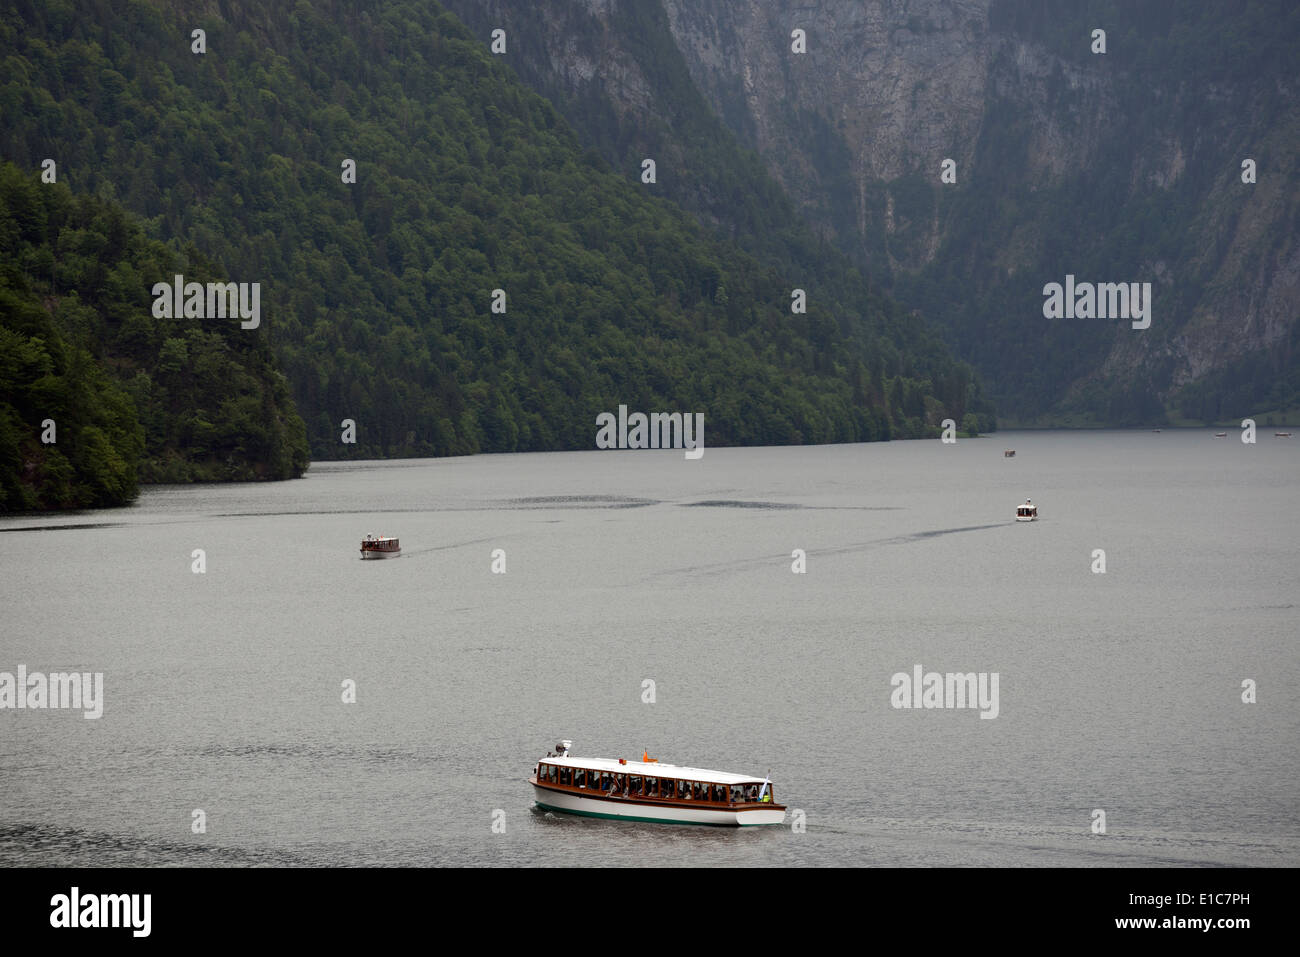 Sightseeing boats operated by Seen-Schifffahrt on the Konigssee, Bavaria, Germany. - Stock Image